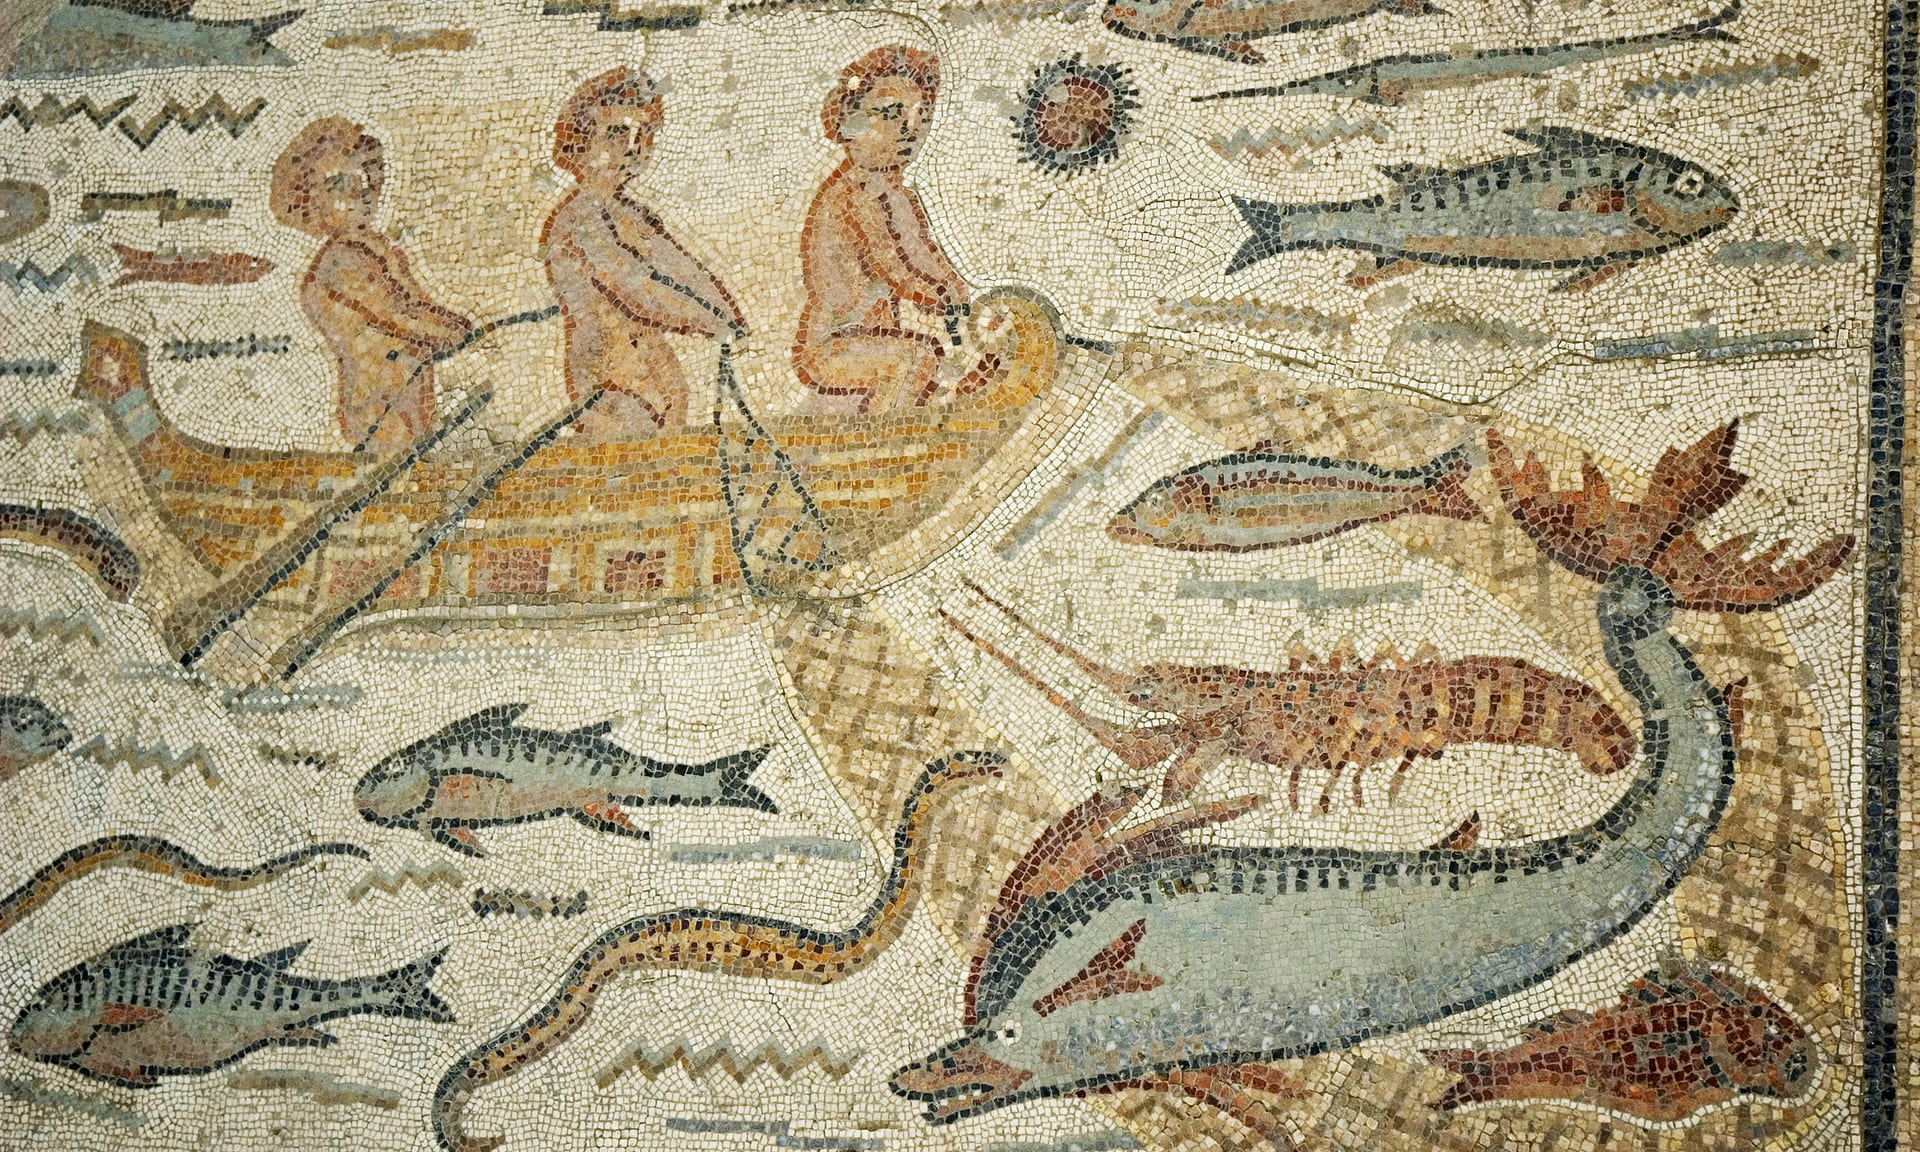 Did the Romans hunt whales?